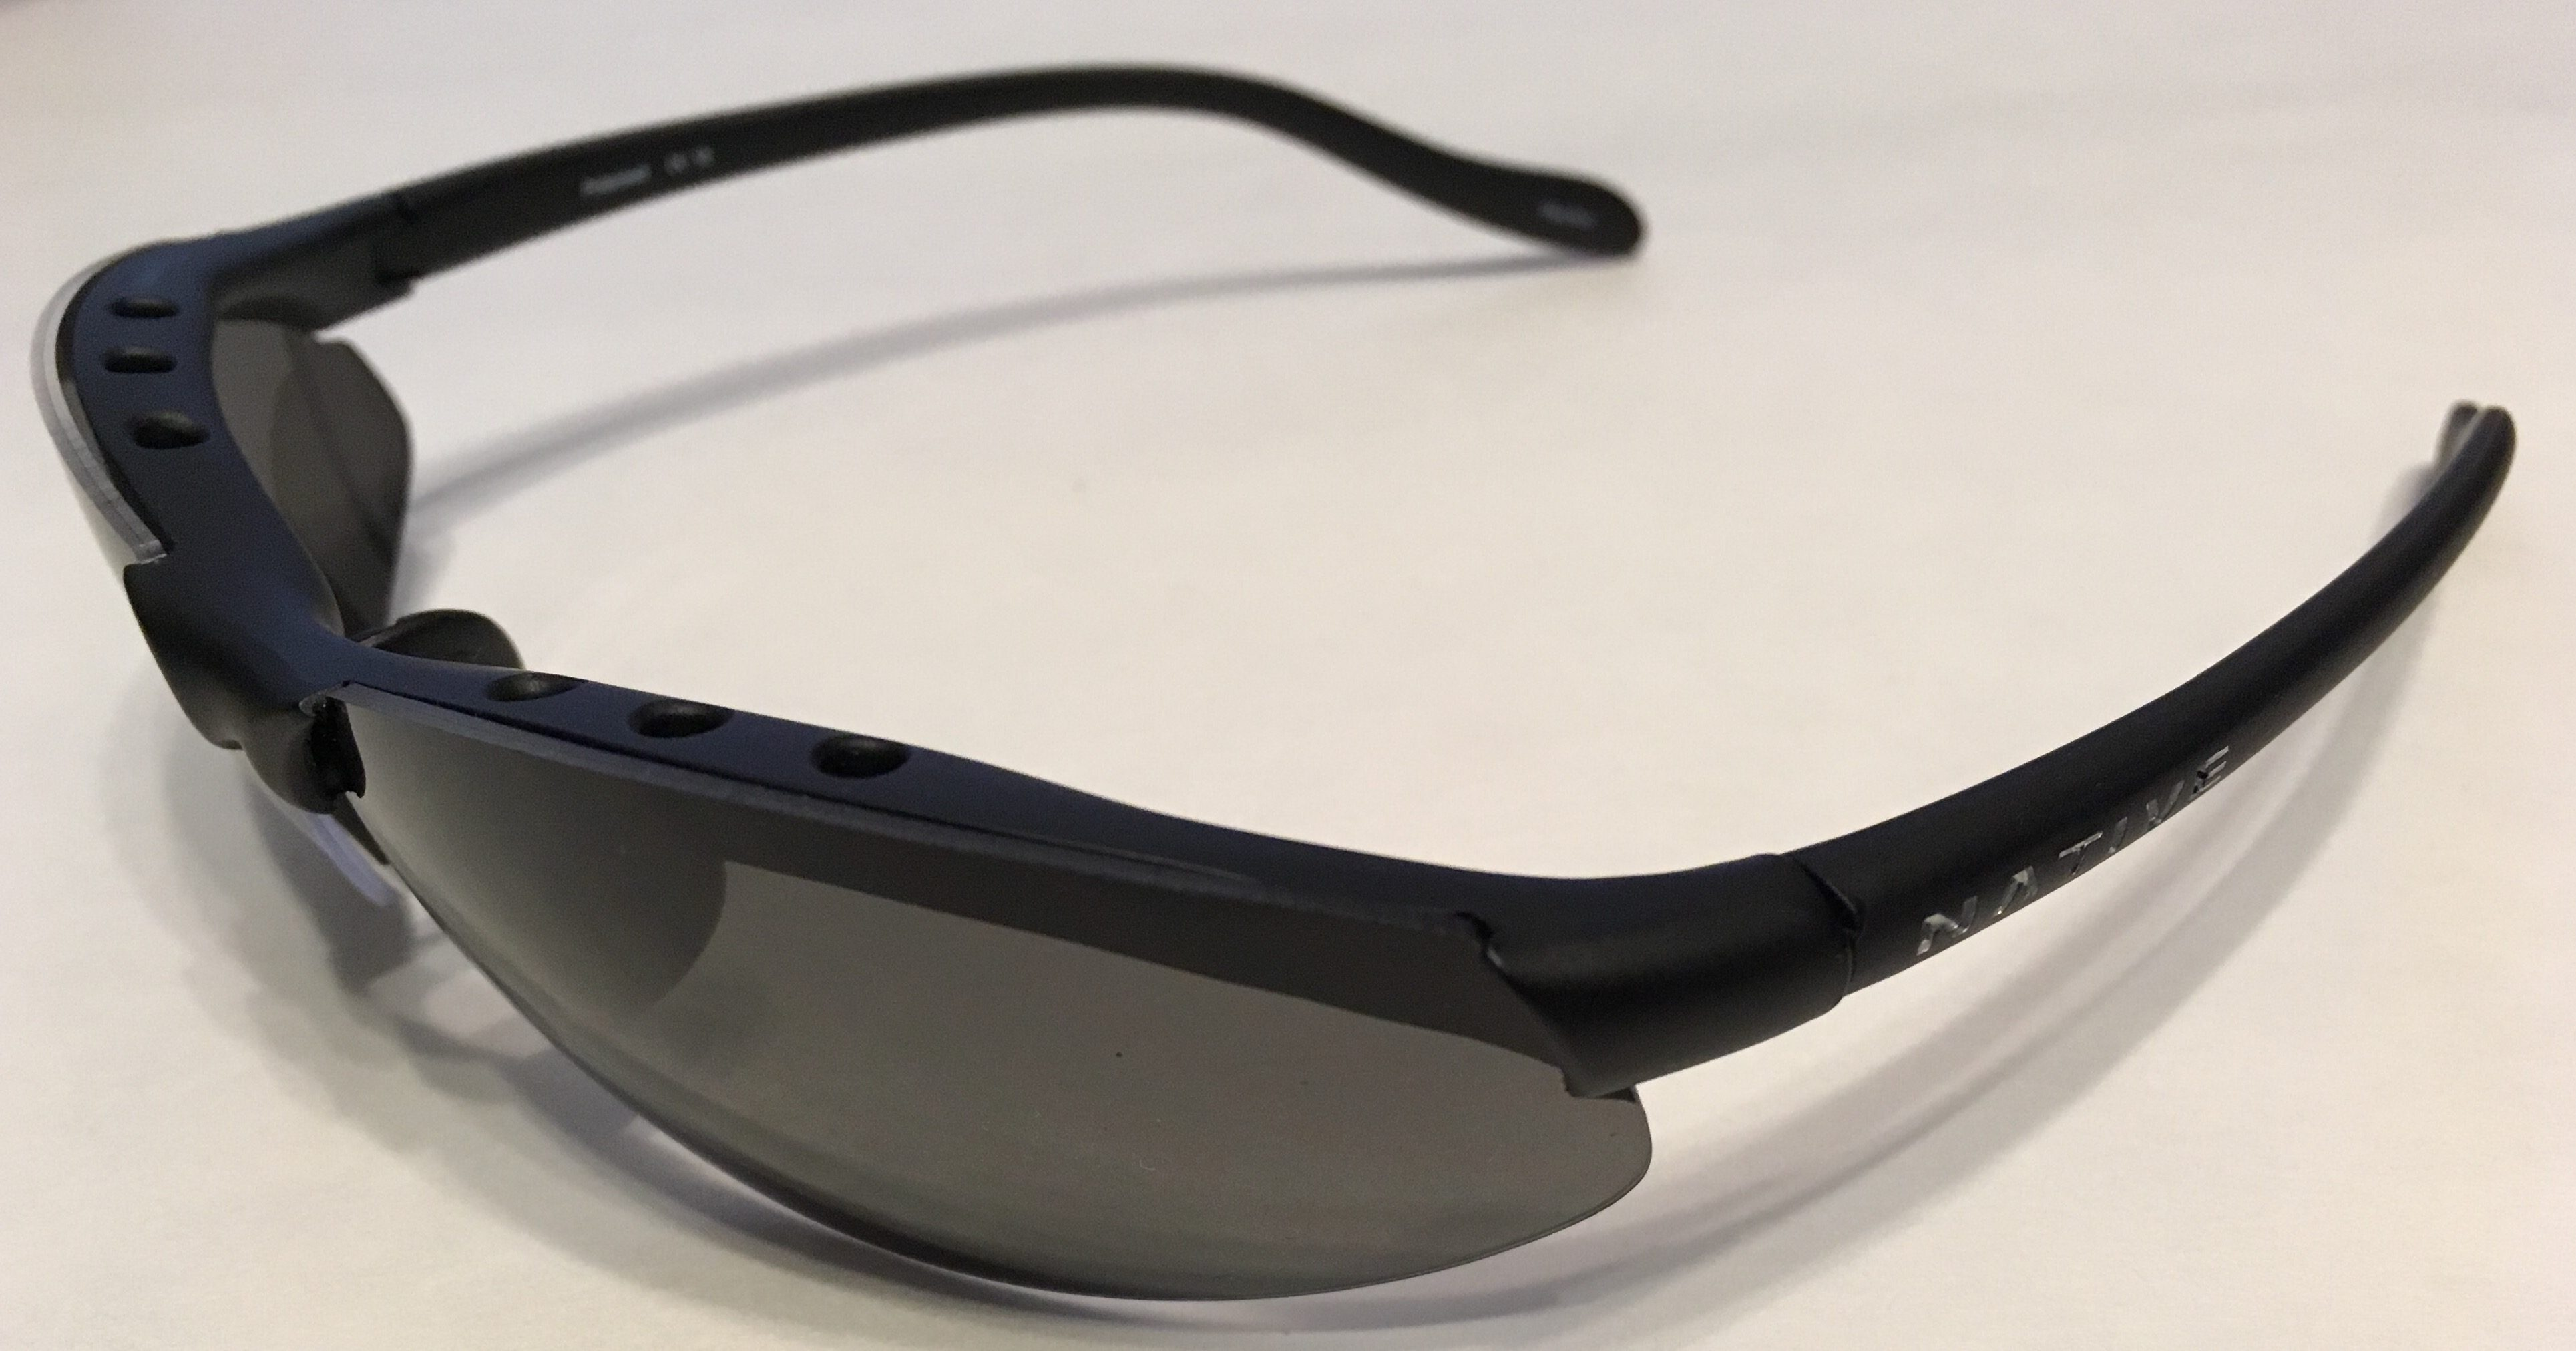 Native Eyewear Dash XR Sunglasses - Asphalt Matte Black - POLARIZED Gray